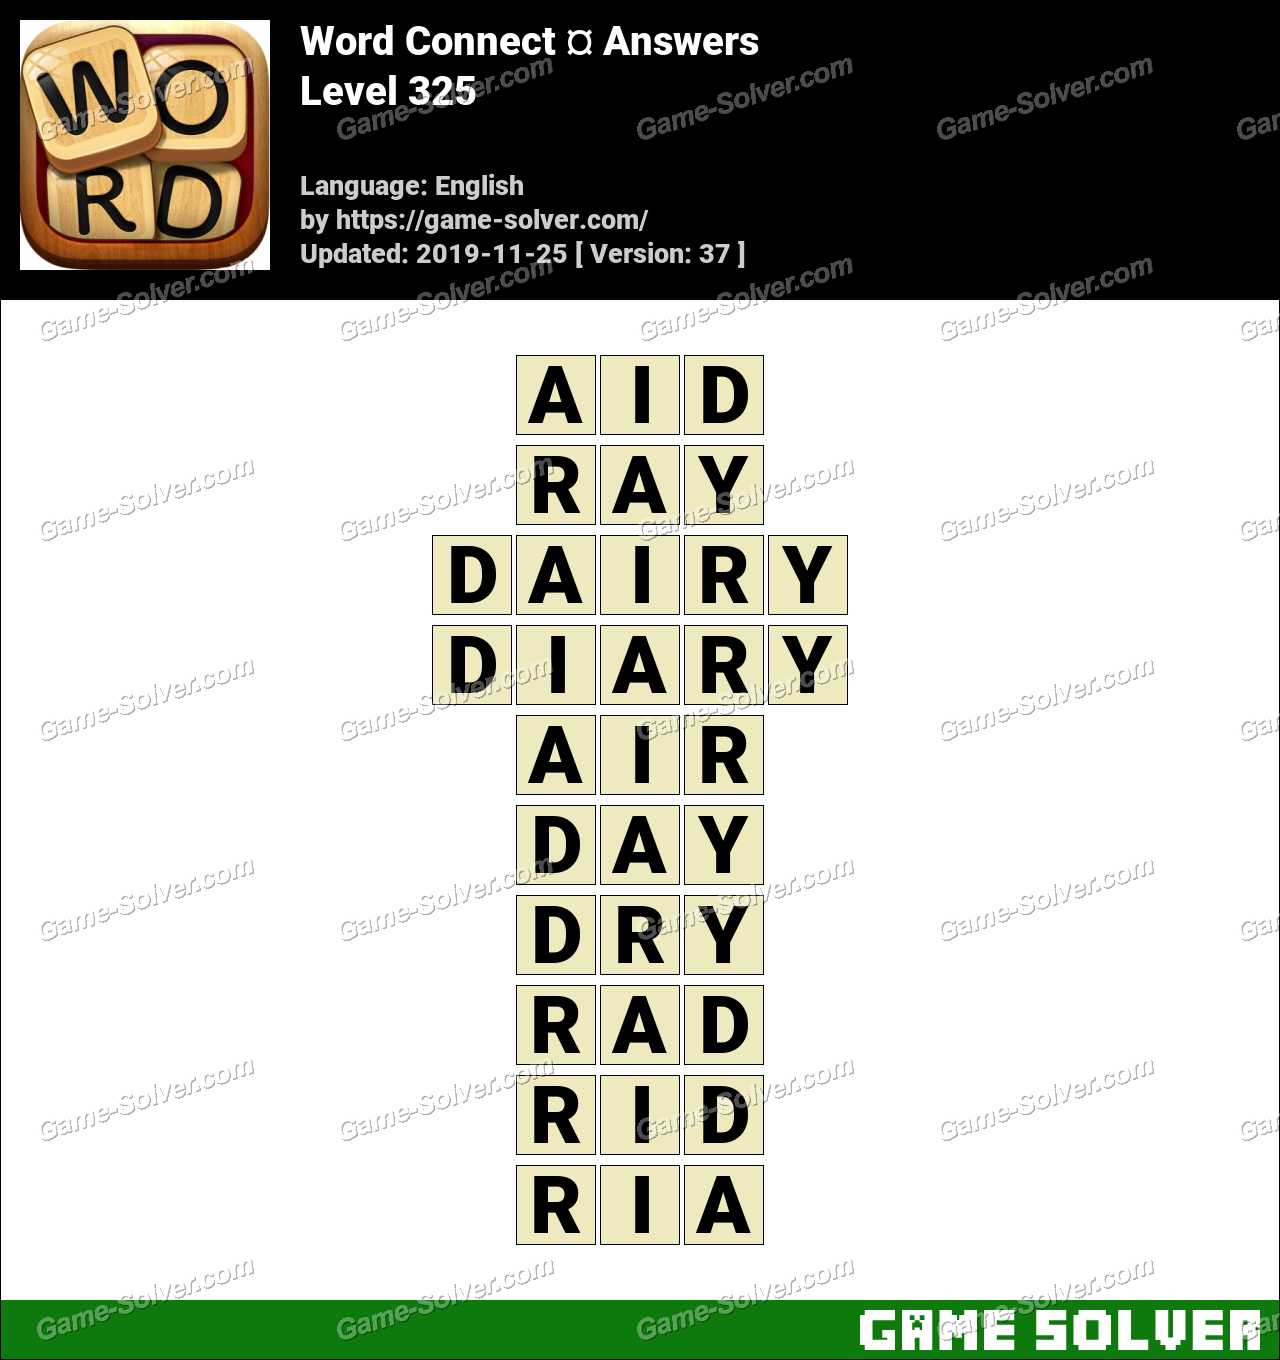 Word Connect Level 325 Answers